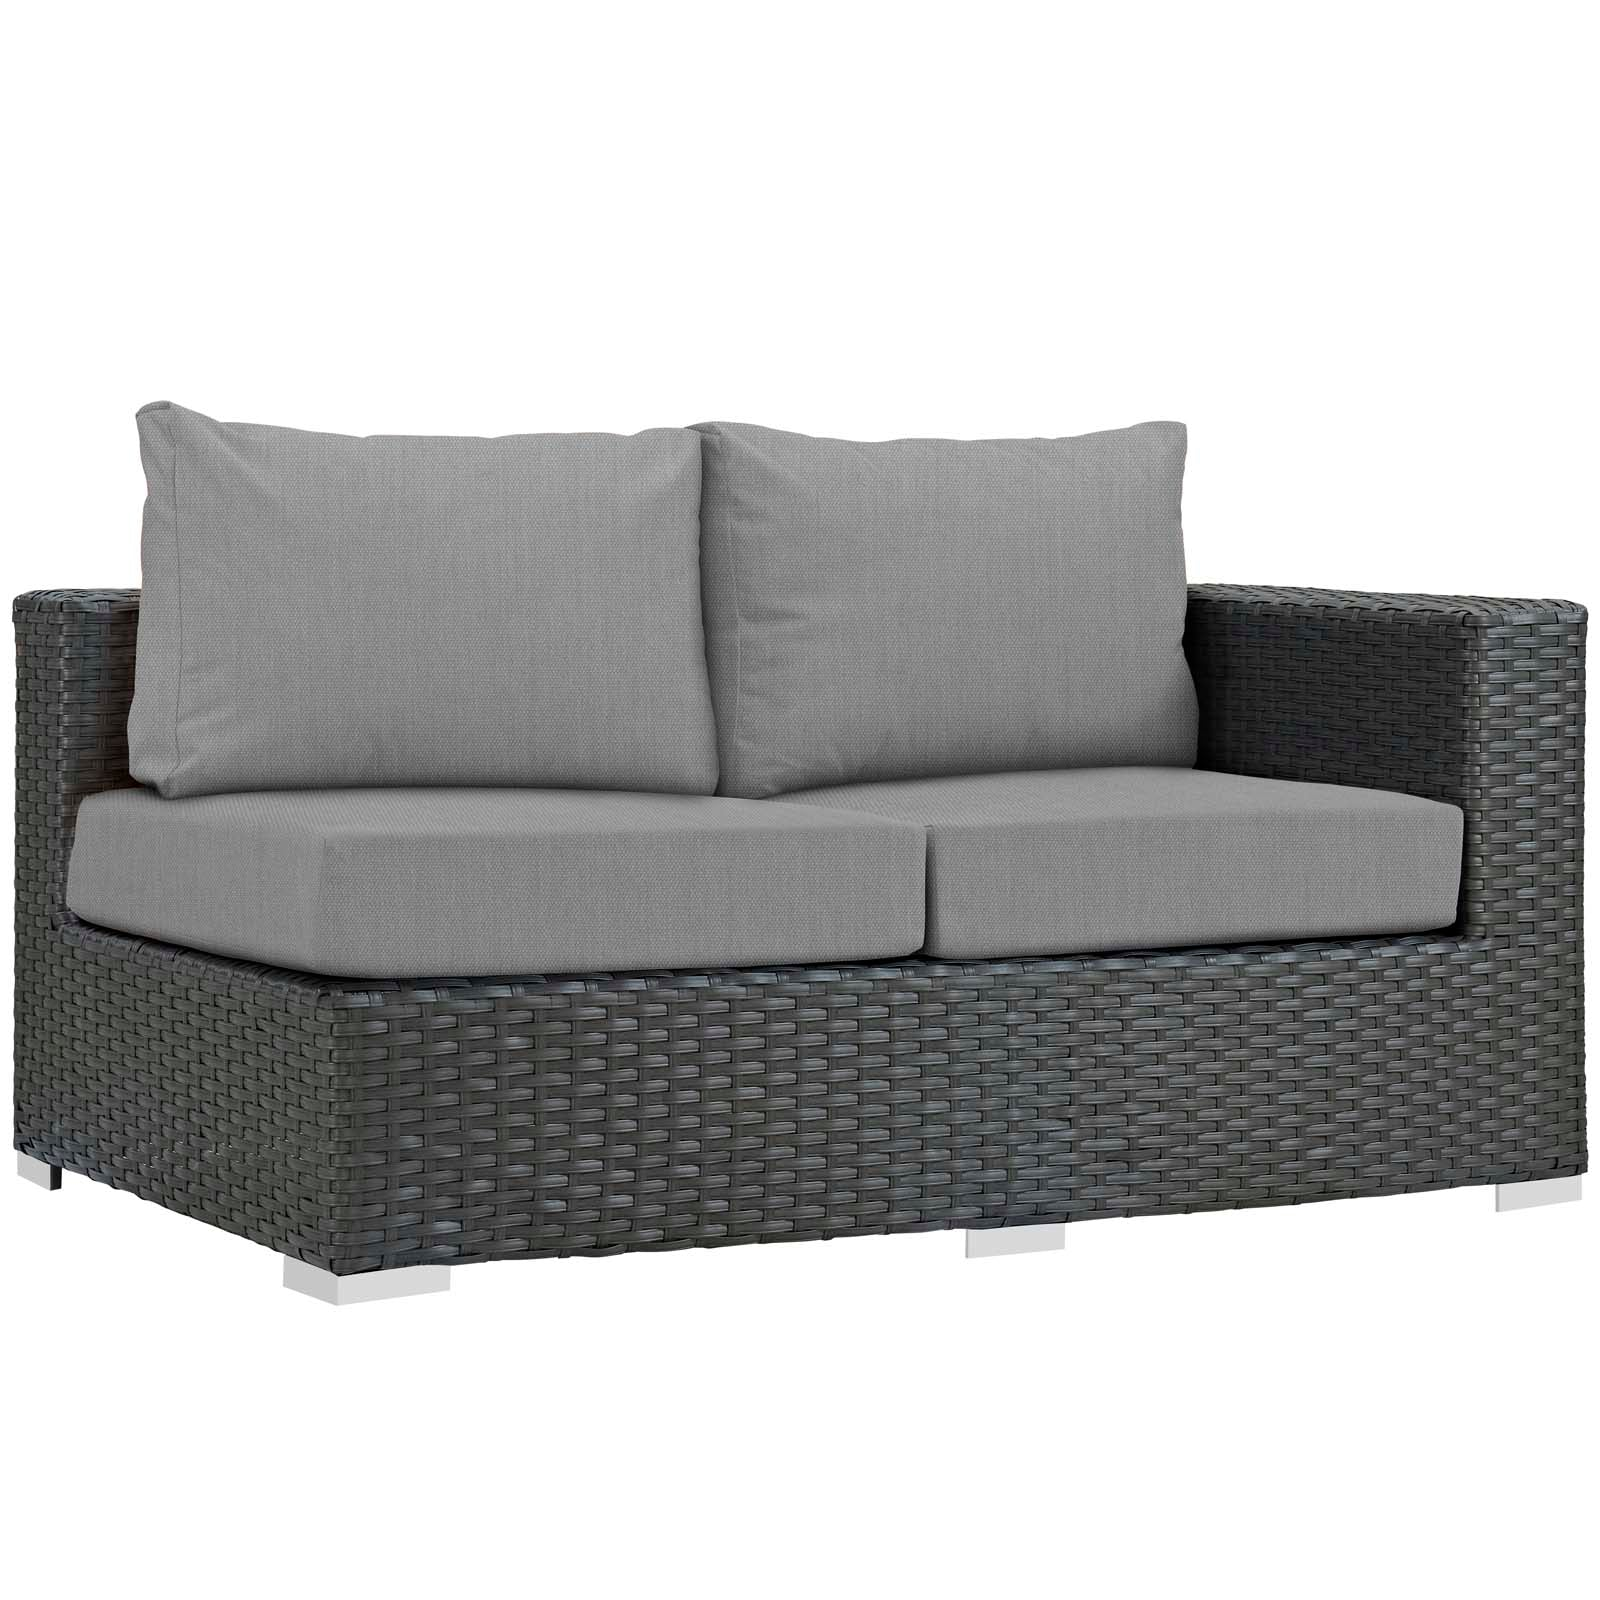 Modway Sojourn Outdoor Patio Sunbrella® Right Arm Loveseat in Canvas Gray